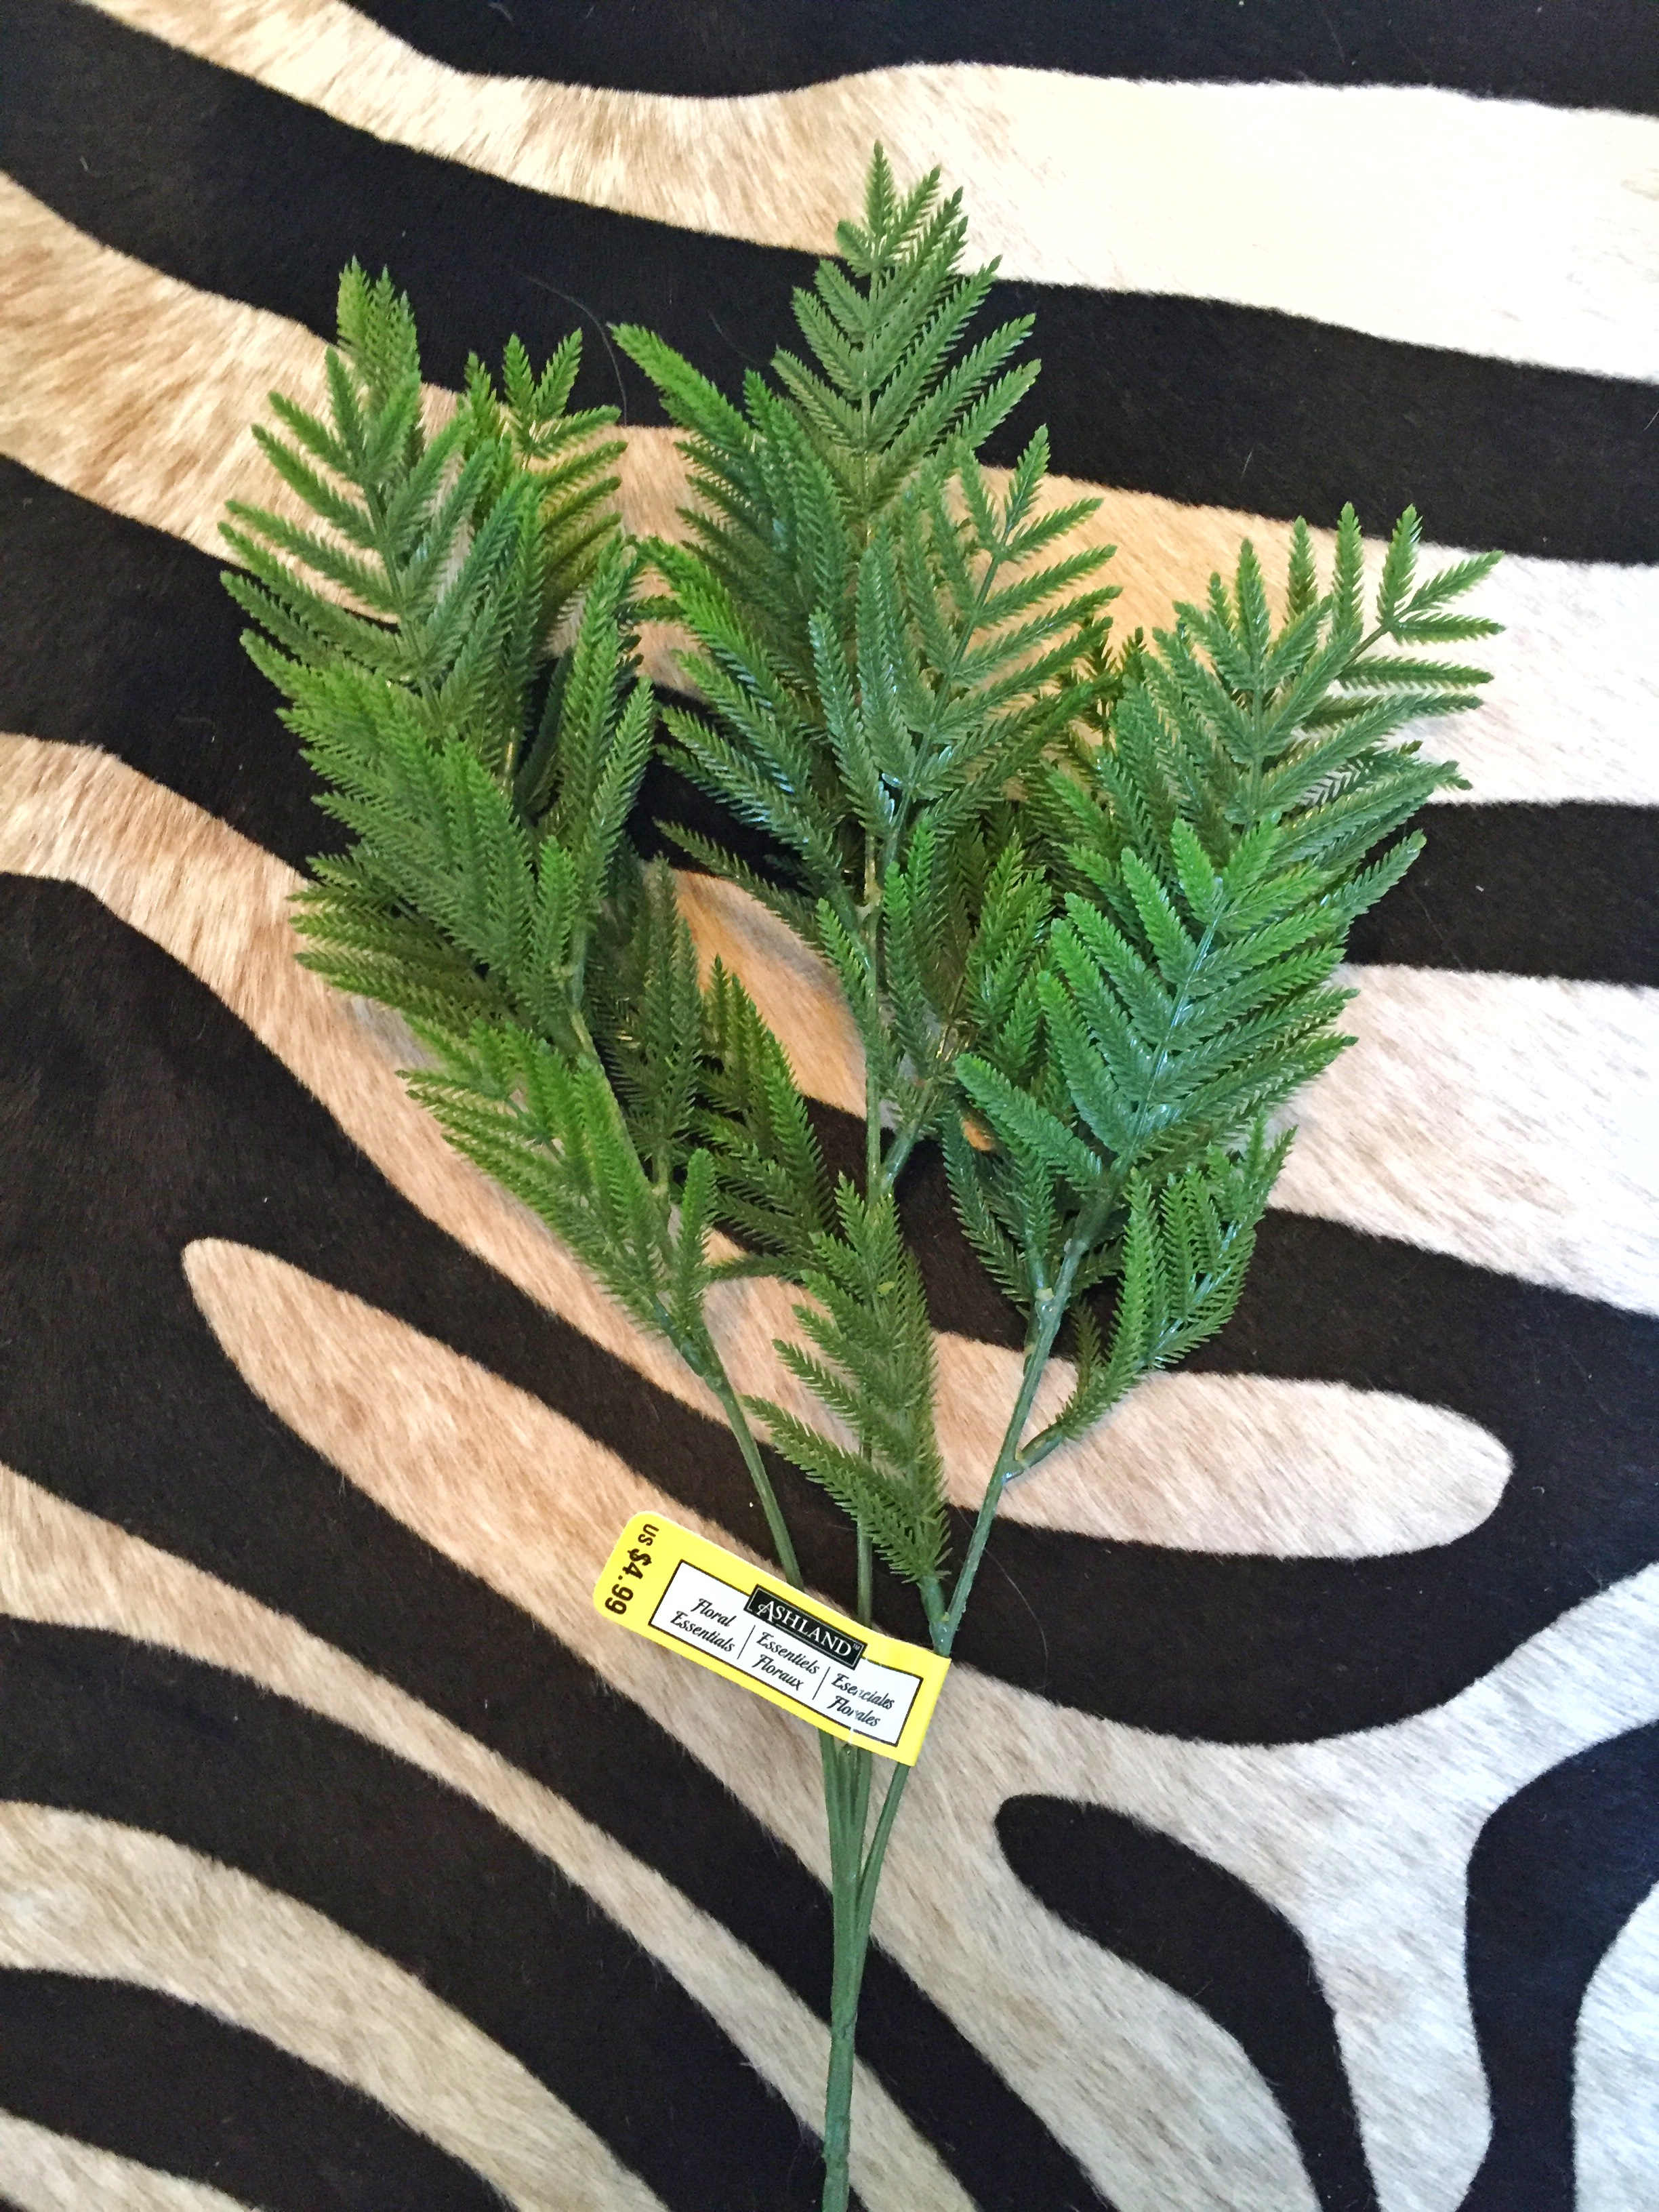 This fern bunch and washi tape were found at Michael's.